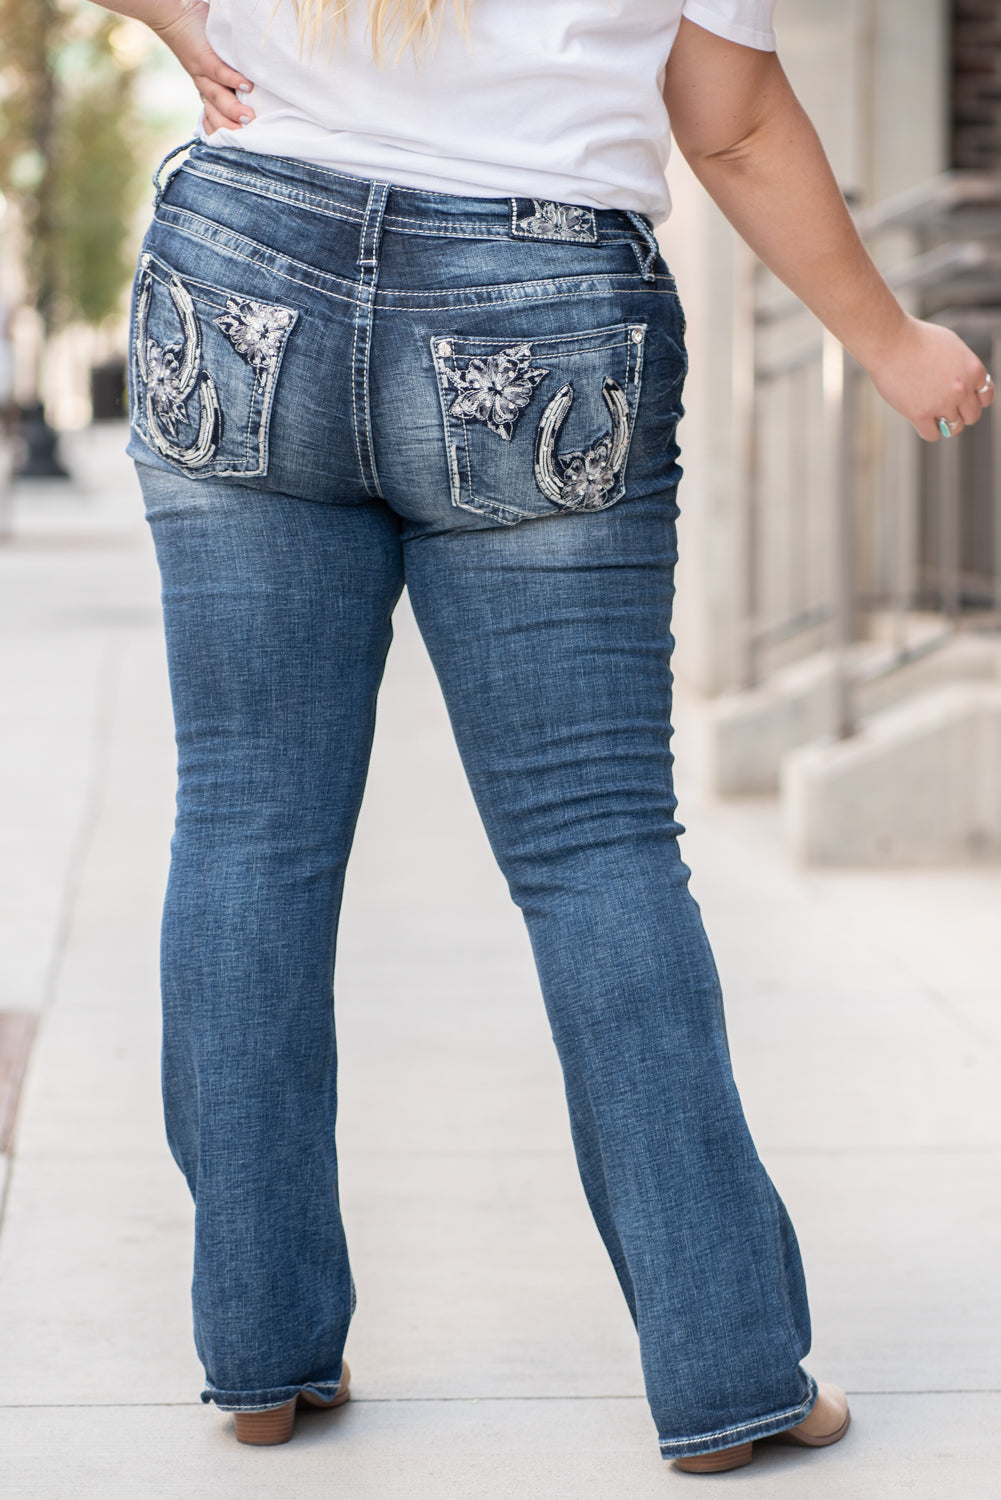 "Miss Me Collection: Fall 2020 Wash: Dark Blue Inseam: 34"" Boot Cut 97% Cotton, 3% Elastane Mid Rise, 8.75"" Front Rise Embellished Floral Horseshoe Pockets  Style #: M3644B Contact us for any additional measurements or sizing.  Victoria is wearing a size 36 in these jeans."